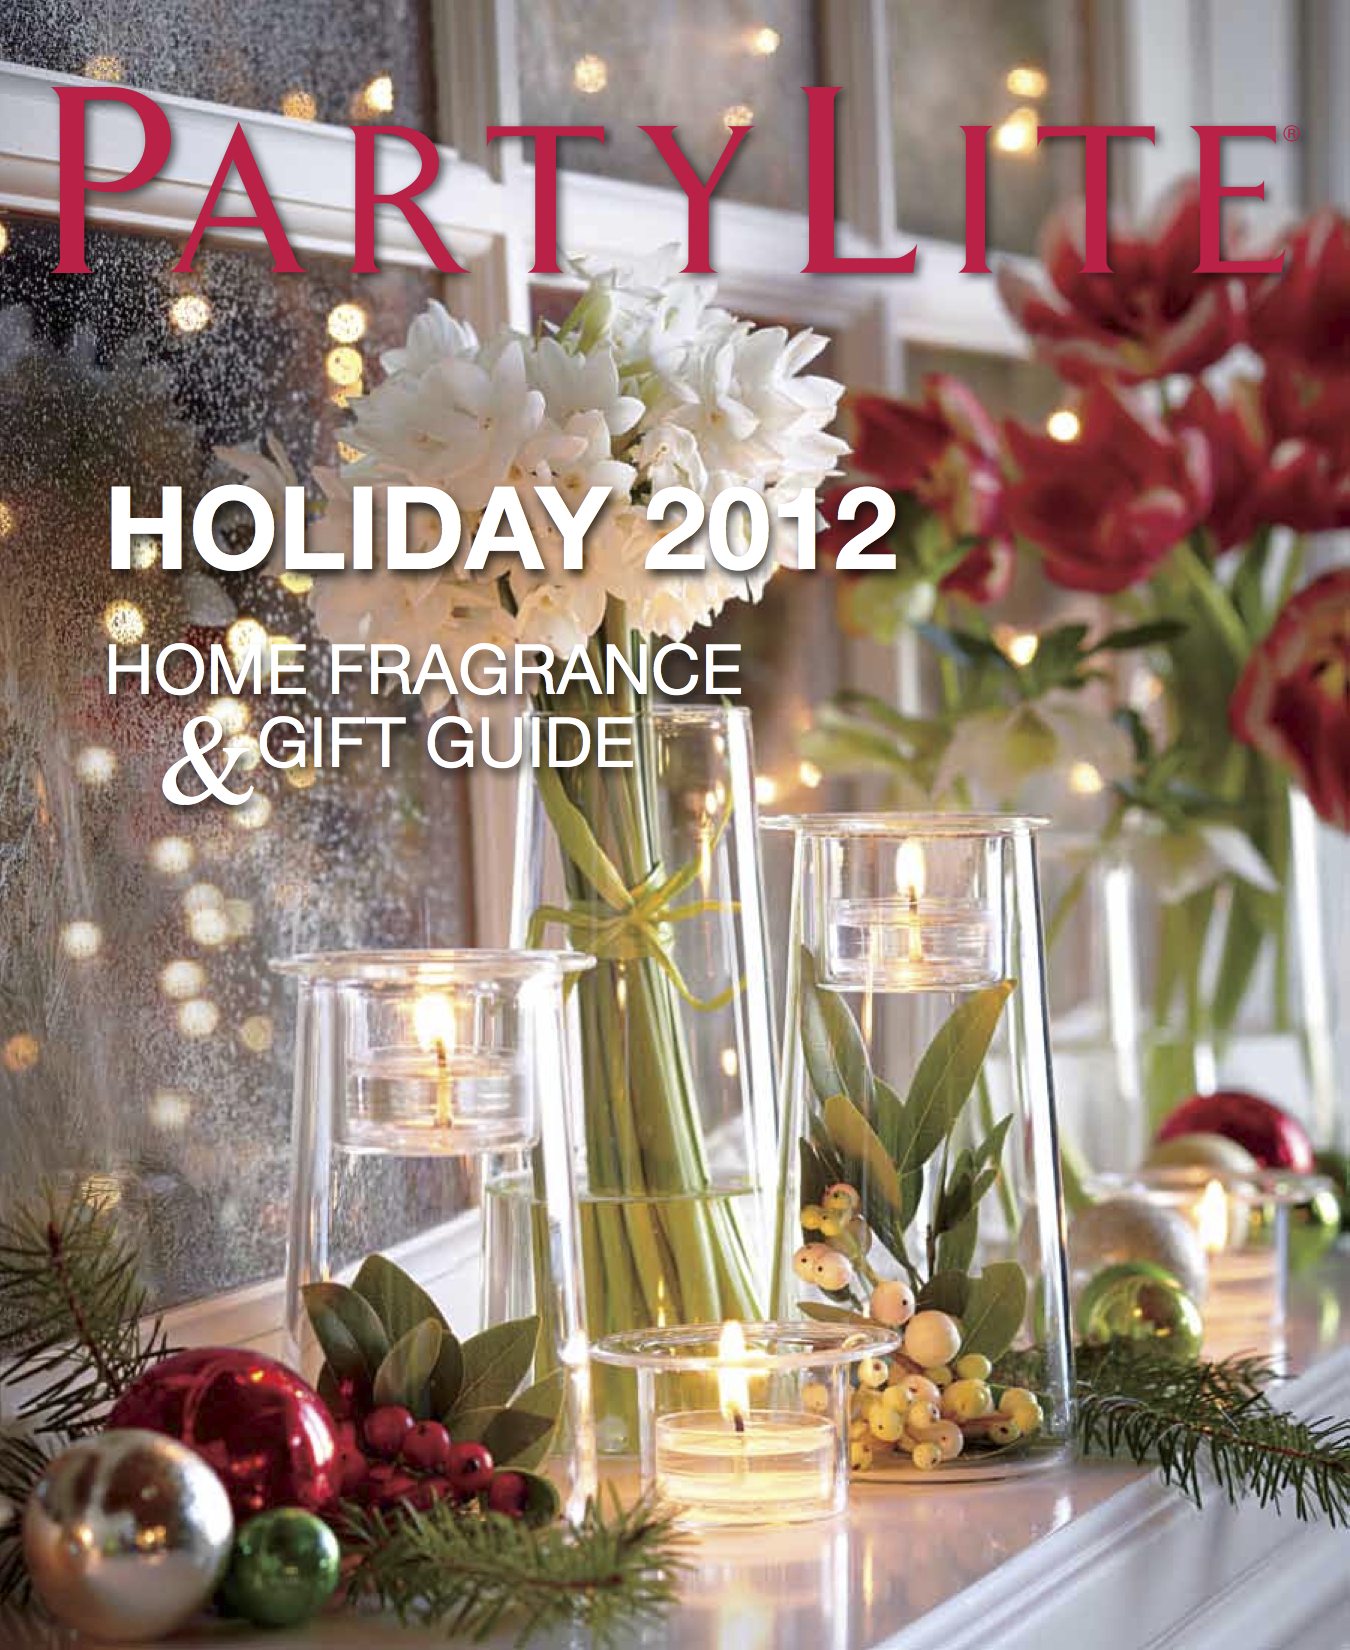 catalogue partylite 2012